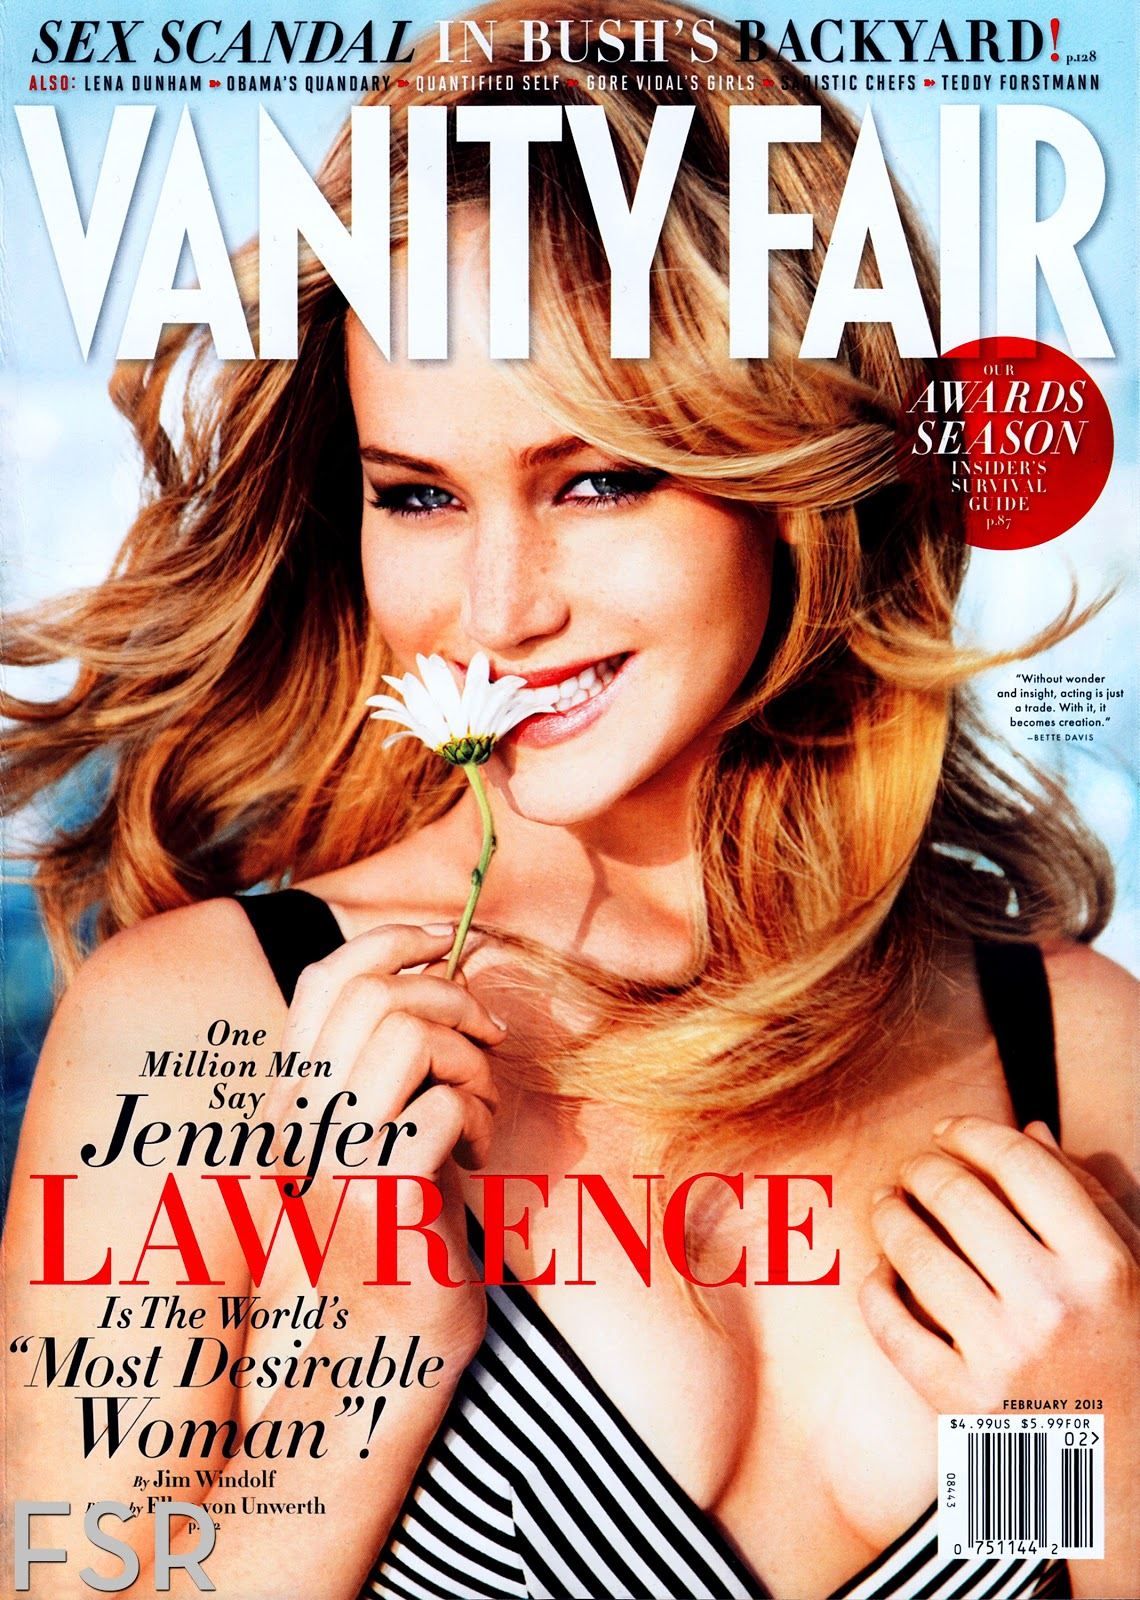 http://3.bp.blogspot.com/-qln2yUi-CmI/UOPRLwOEDnI/AAAAAAAC2dI/xQ7zxCHd_Qw/s1600/fashion_scans_remastered-jennifer_lawrence-vanity_fair_usa-february_2013-scanned_by_vampirehorde-hq-1.jpg